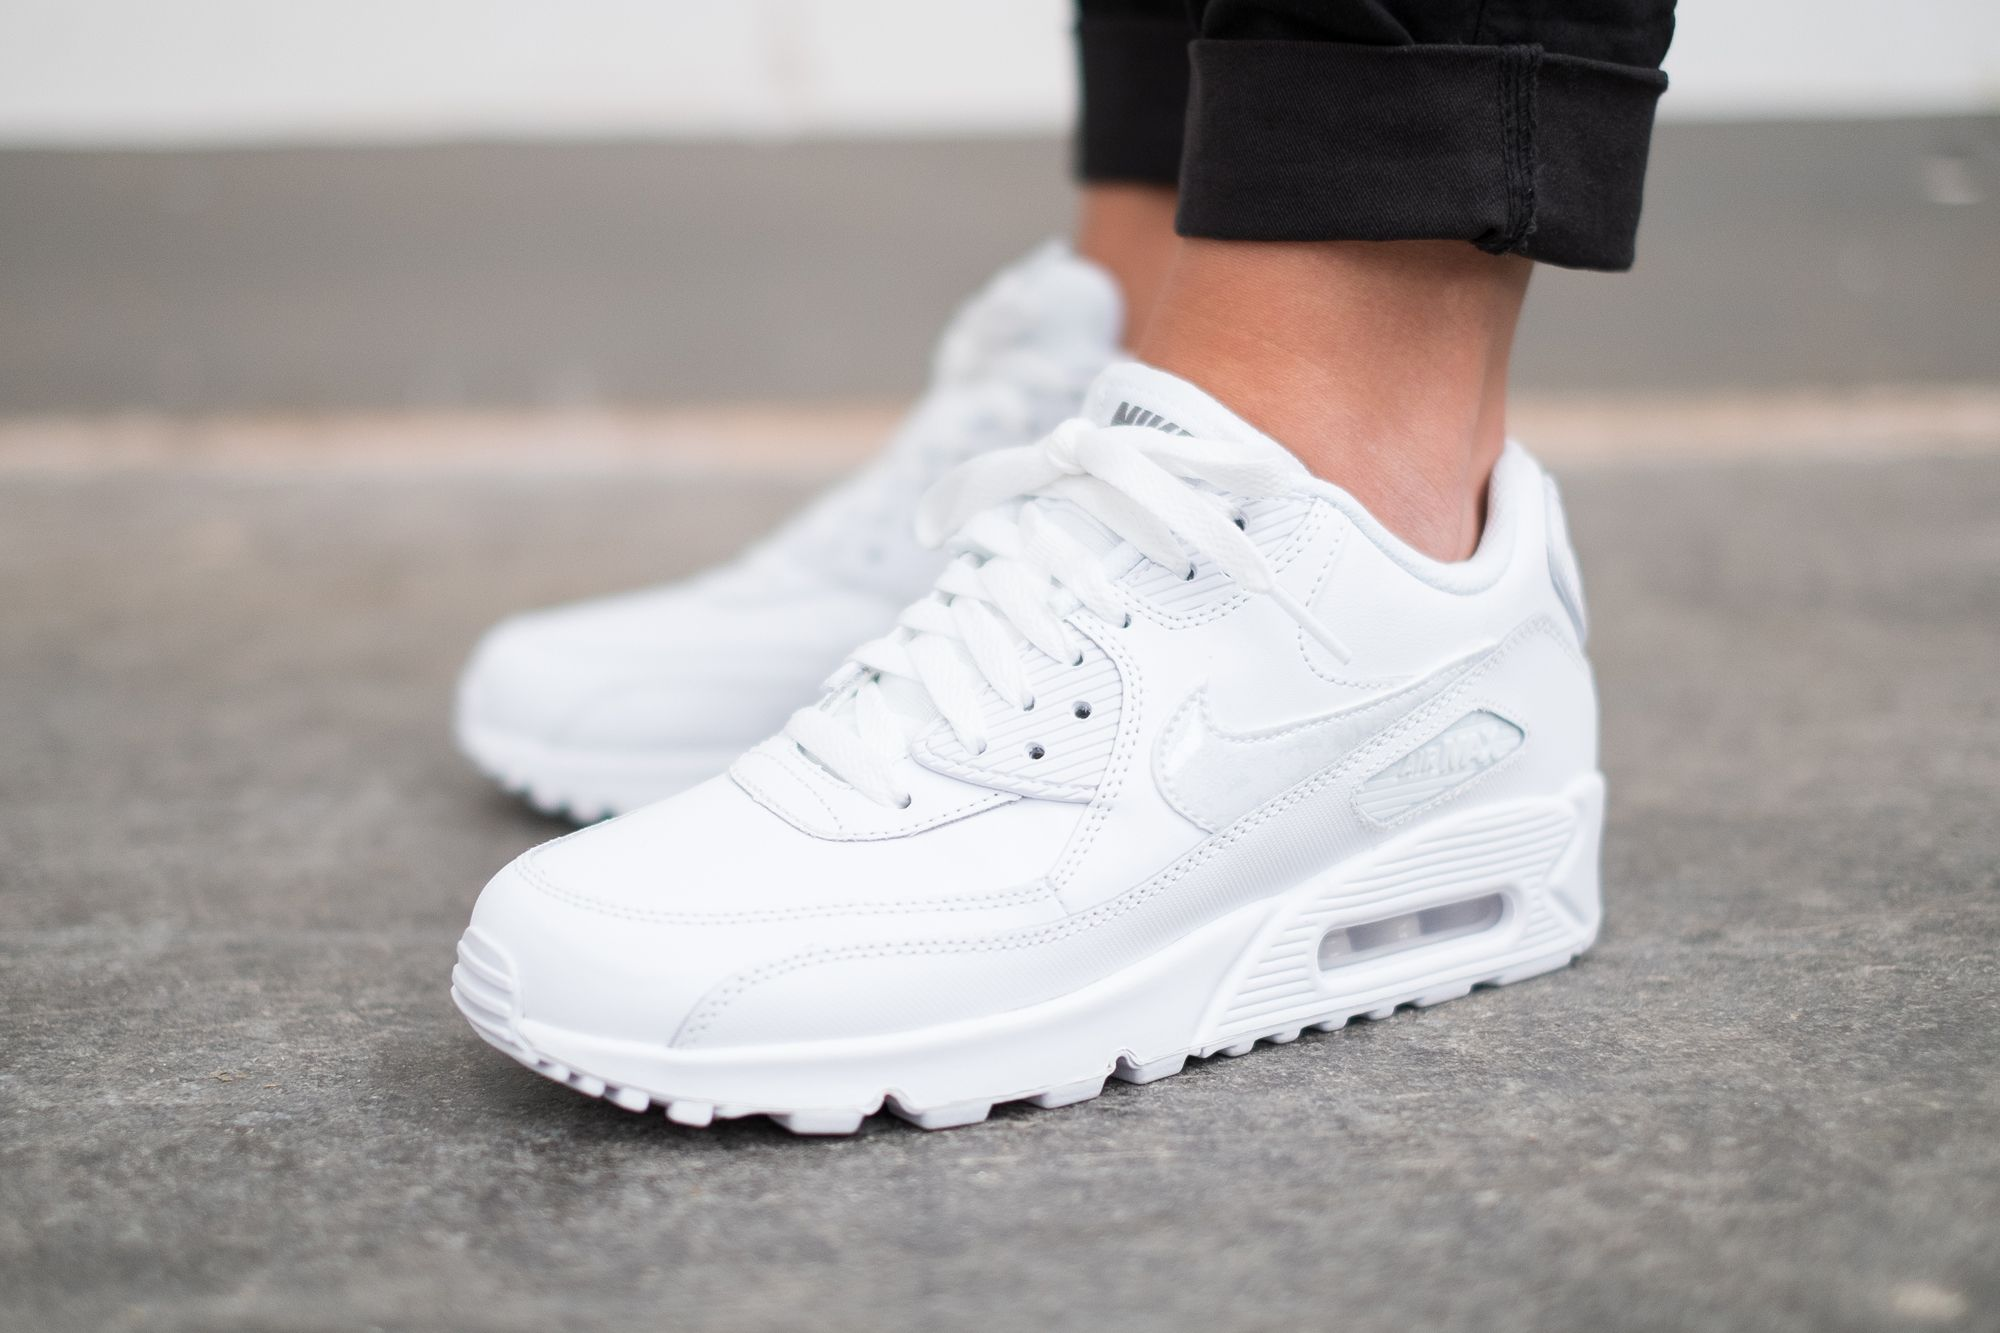 Ladies, the Nike Air Max 90 Leather GS is available at our